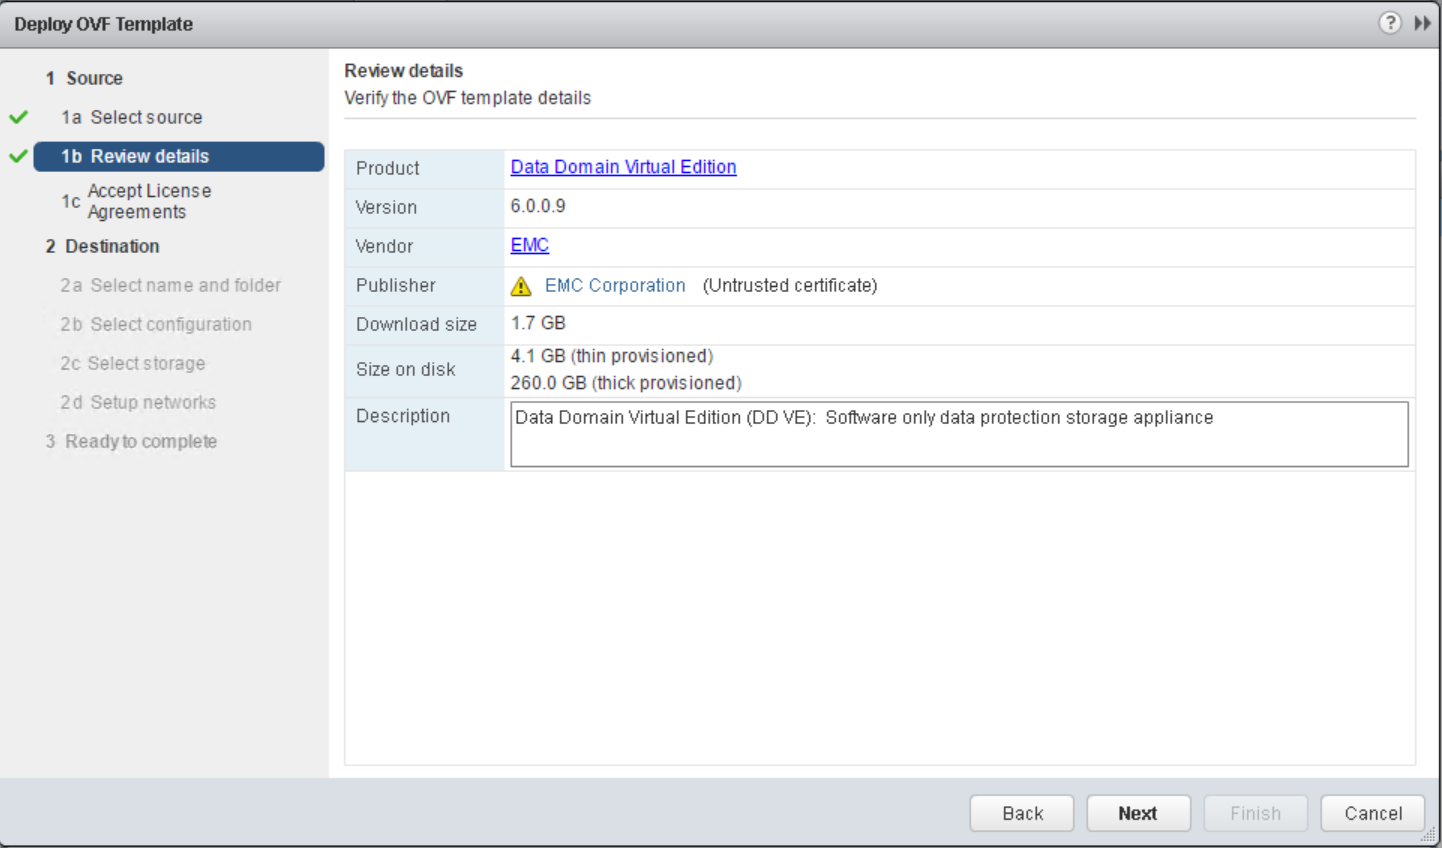 Data Domain Virtual Edition install and configuration overview